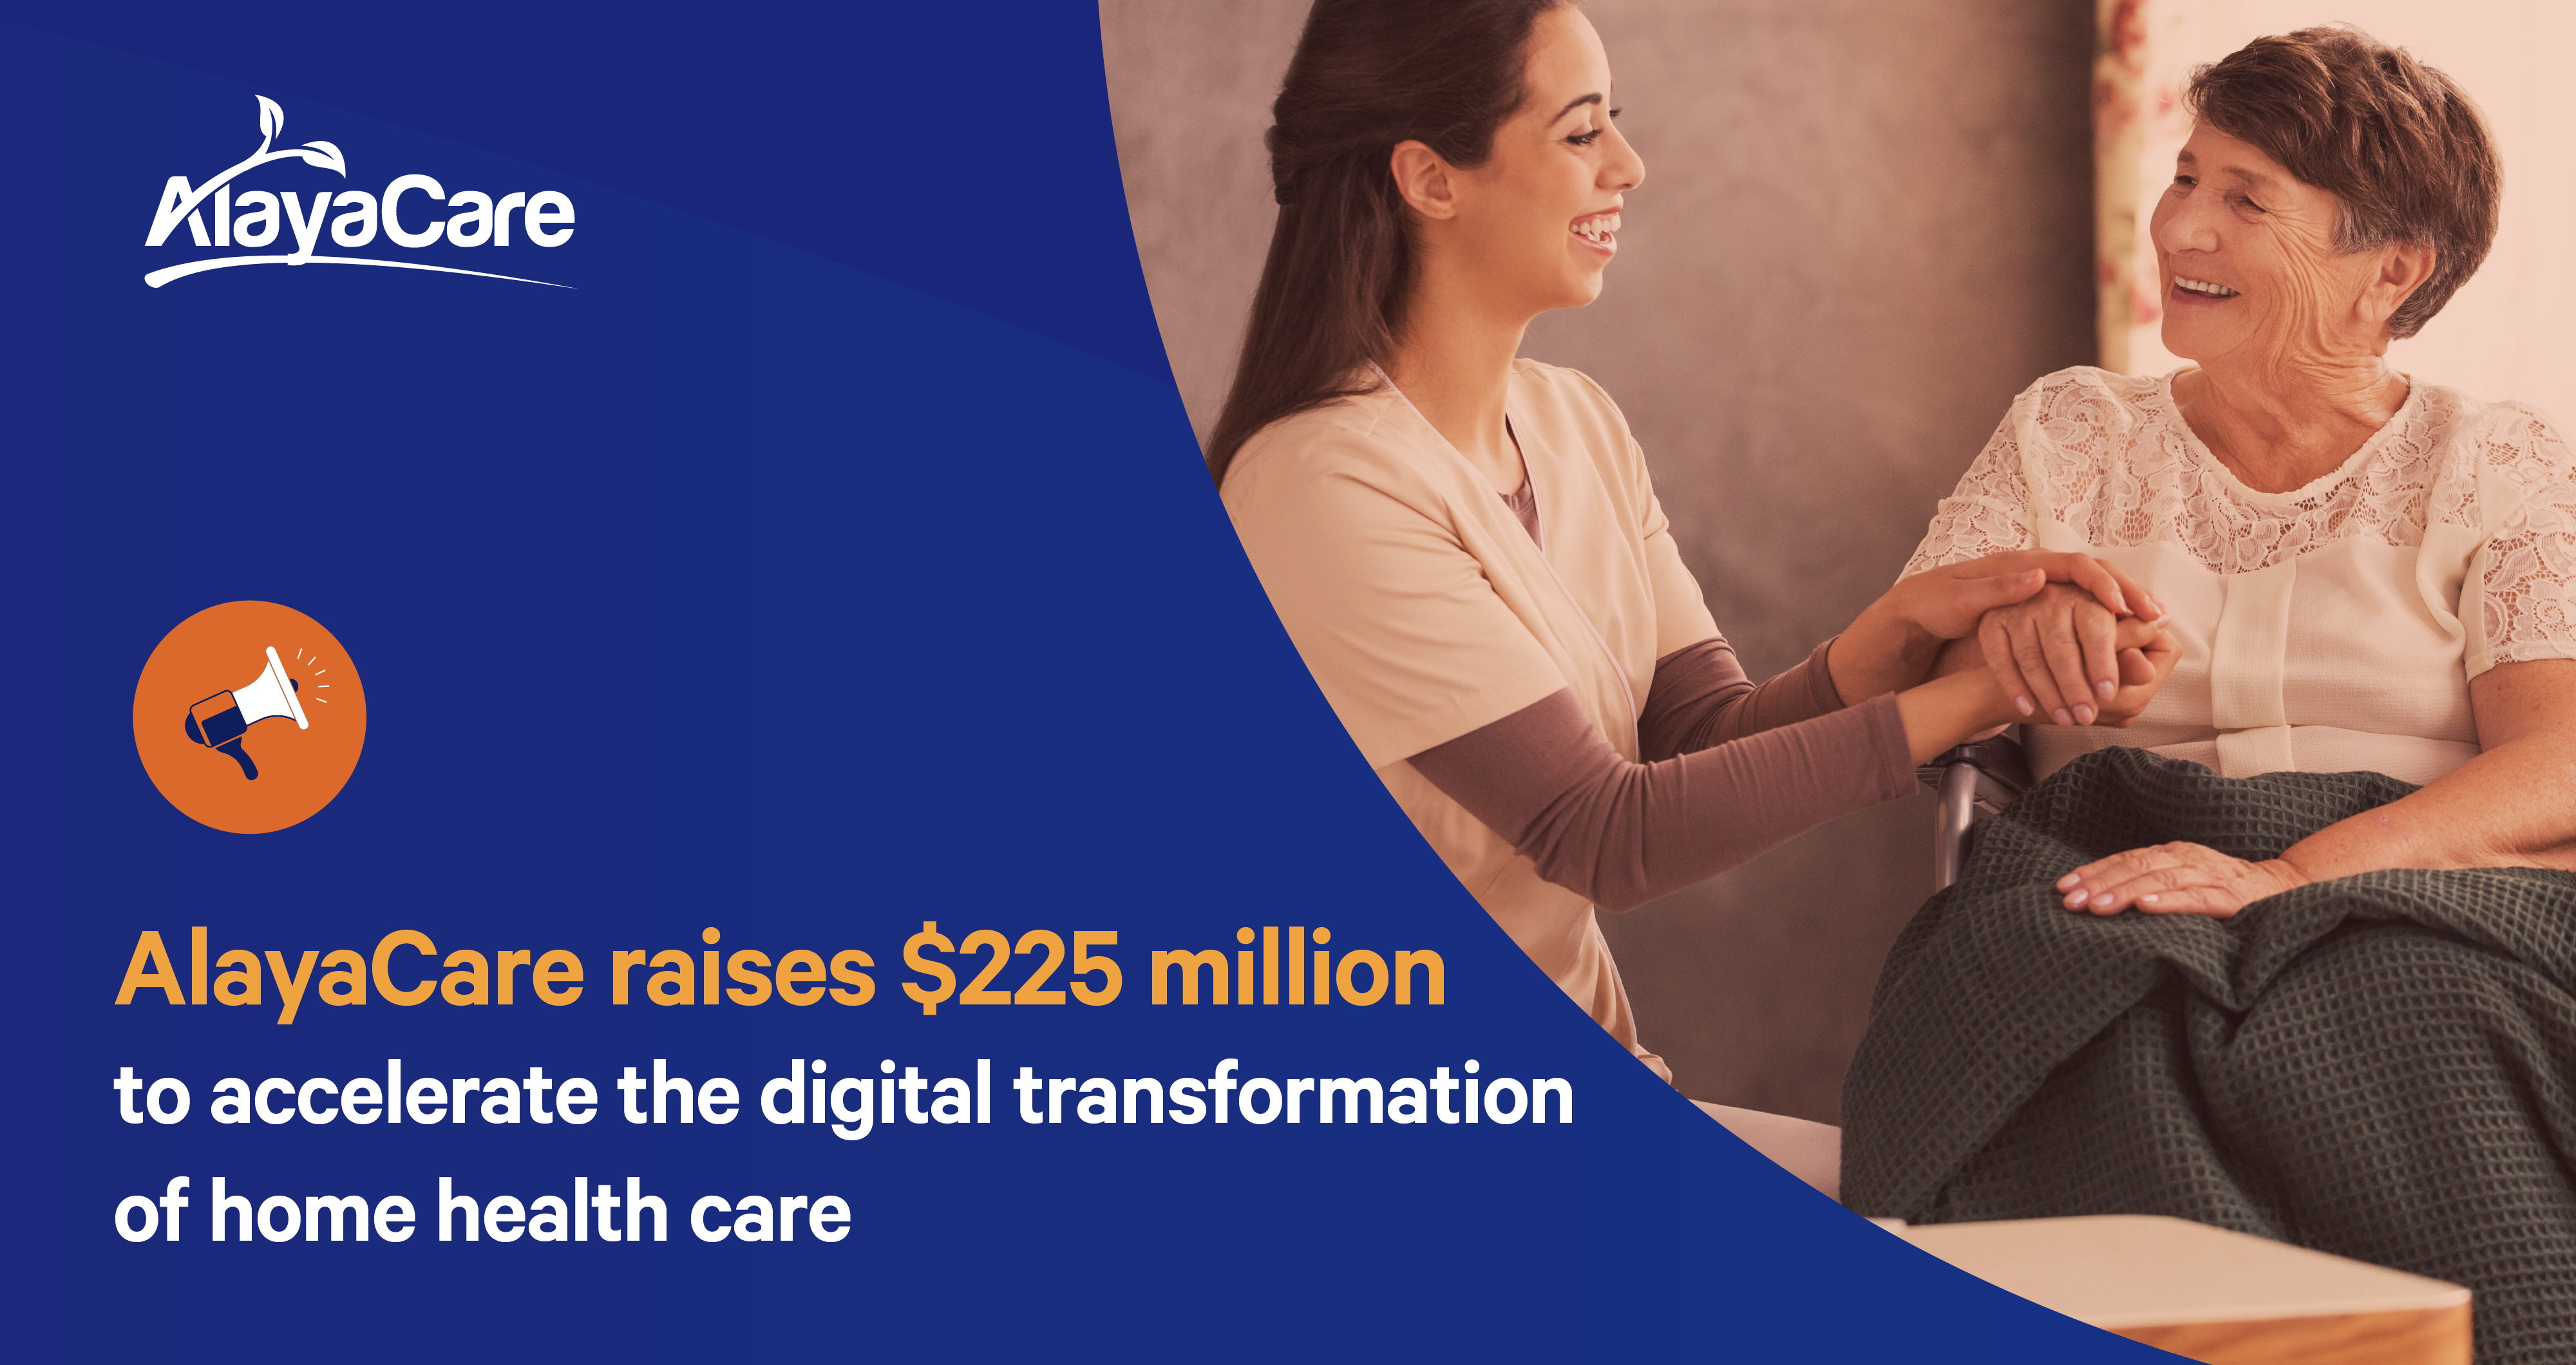 AlayaCare raises $225 million to accelerate the digital transformation of home health care